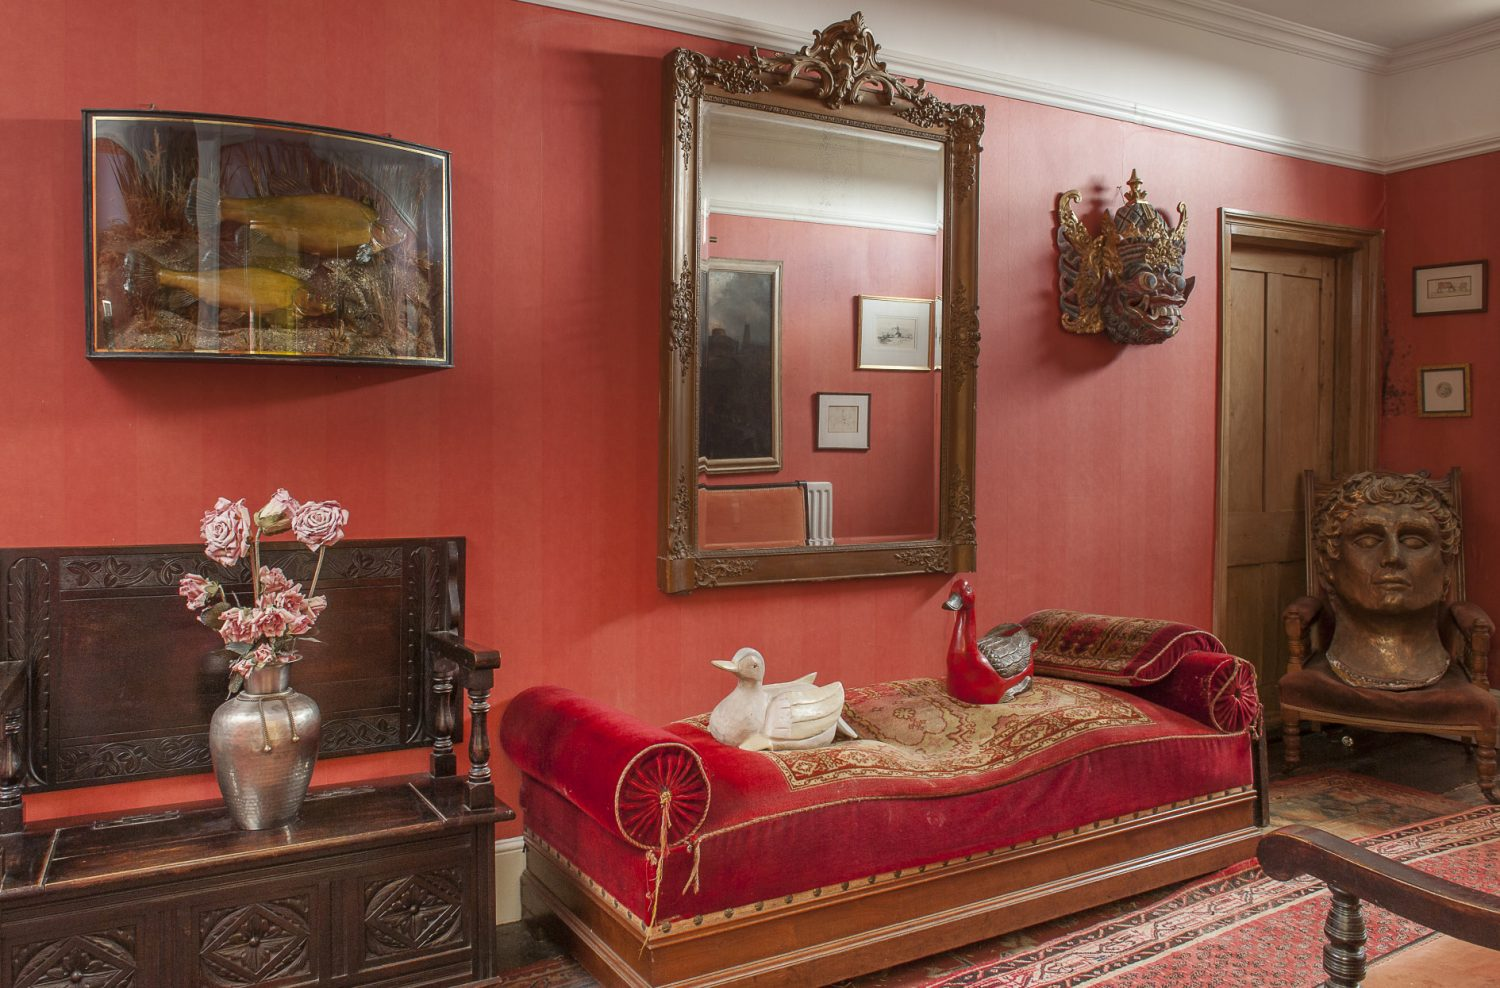 Mounted on the wall of the deep red hallway is a fierce Thai mask, two fat fish in a case and a French mirror the couple brought back from France. In one corner a chair is occupied by a giant Roman head from a film set